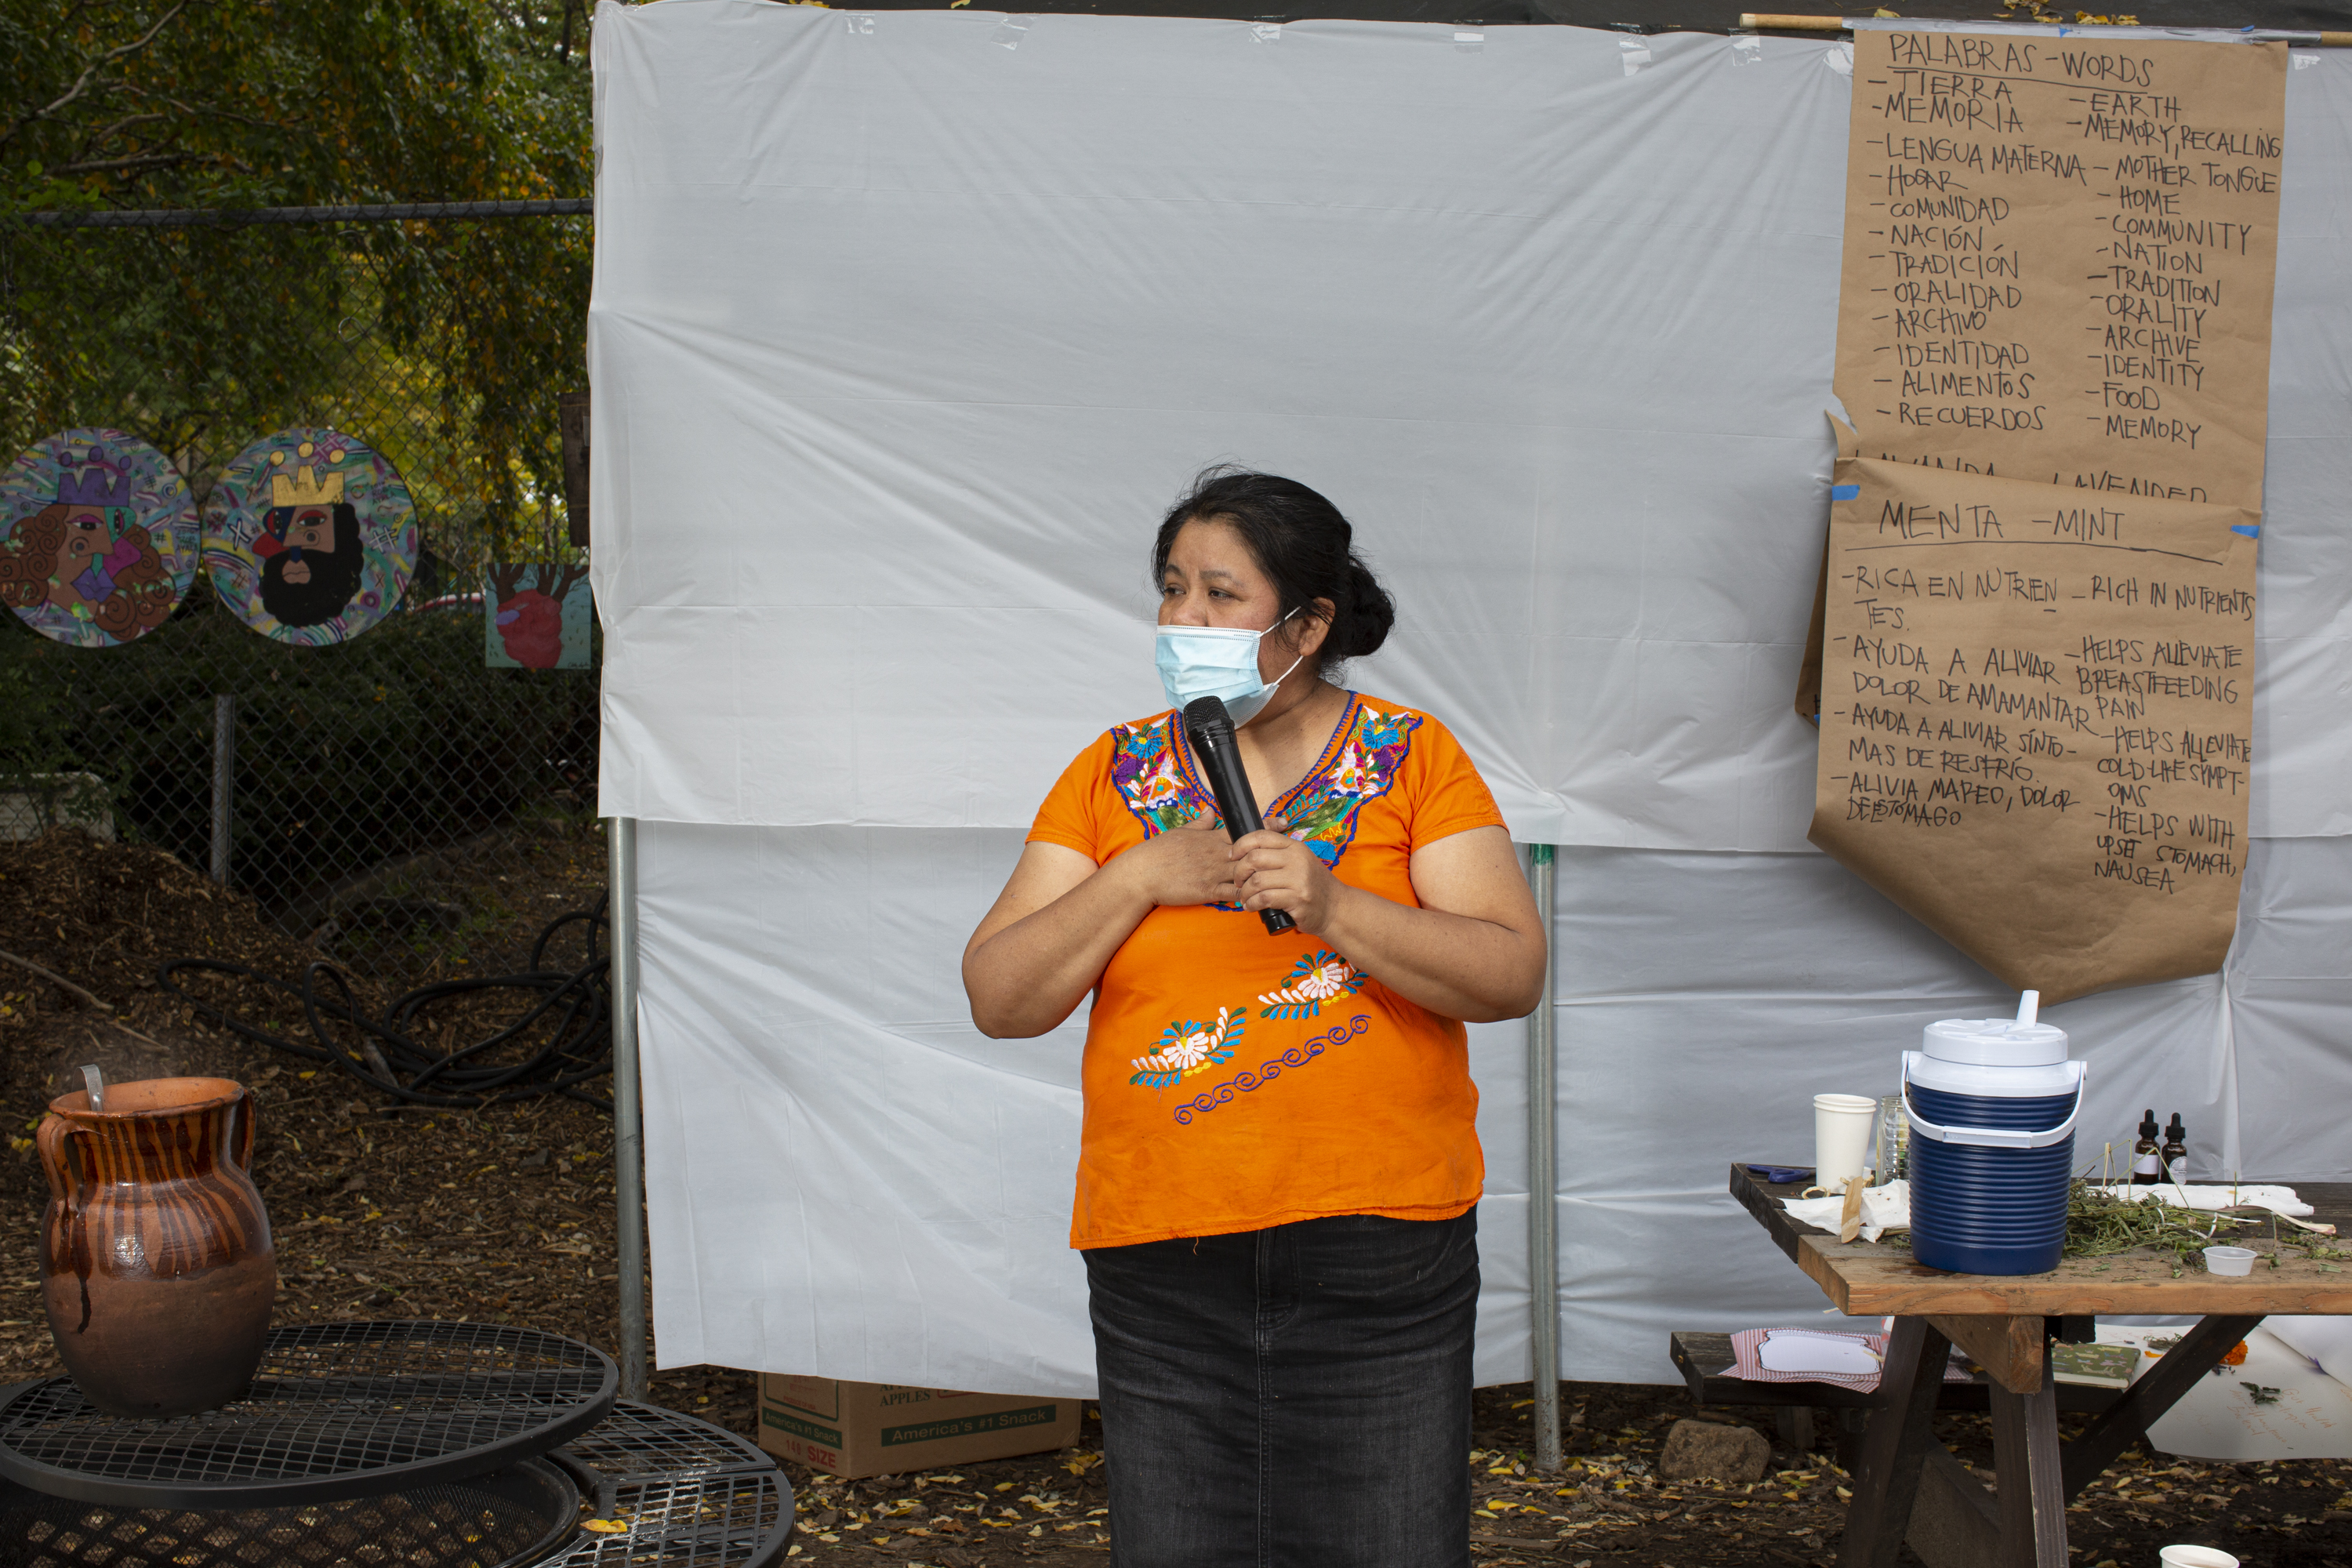 Natalia, wearing an Indigenous Mexican embroidered shirt (orange with flowers), a long black skirt, and a medical mask, shares a memory with the participants of the workshop (out of frame). She uses a microphone to speak, and stands between the table and the fire. In the back, a paper kraft board shows a list of words in English and Spanish that Carolina uses as part of the activity (for instance––tierra/earth; memoria/memory, recalling; lengua materna/mother tongue). Photo by Cinthya Santos-Briones for Brewing Memories workshop, October 24, 2020.